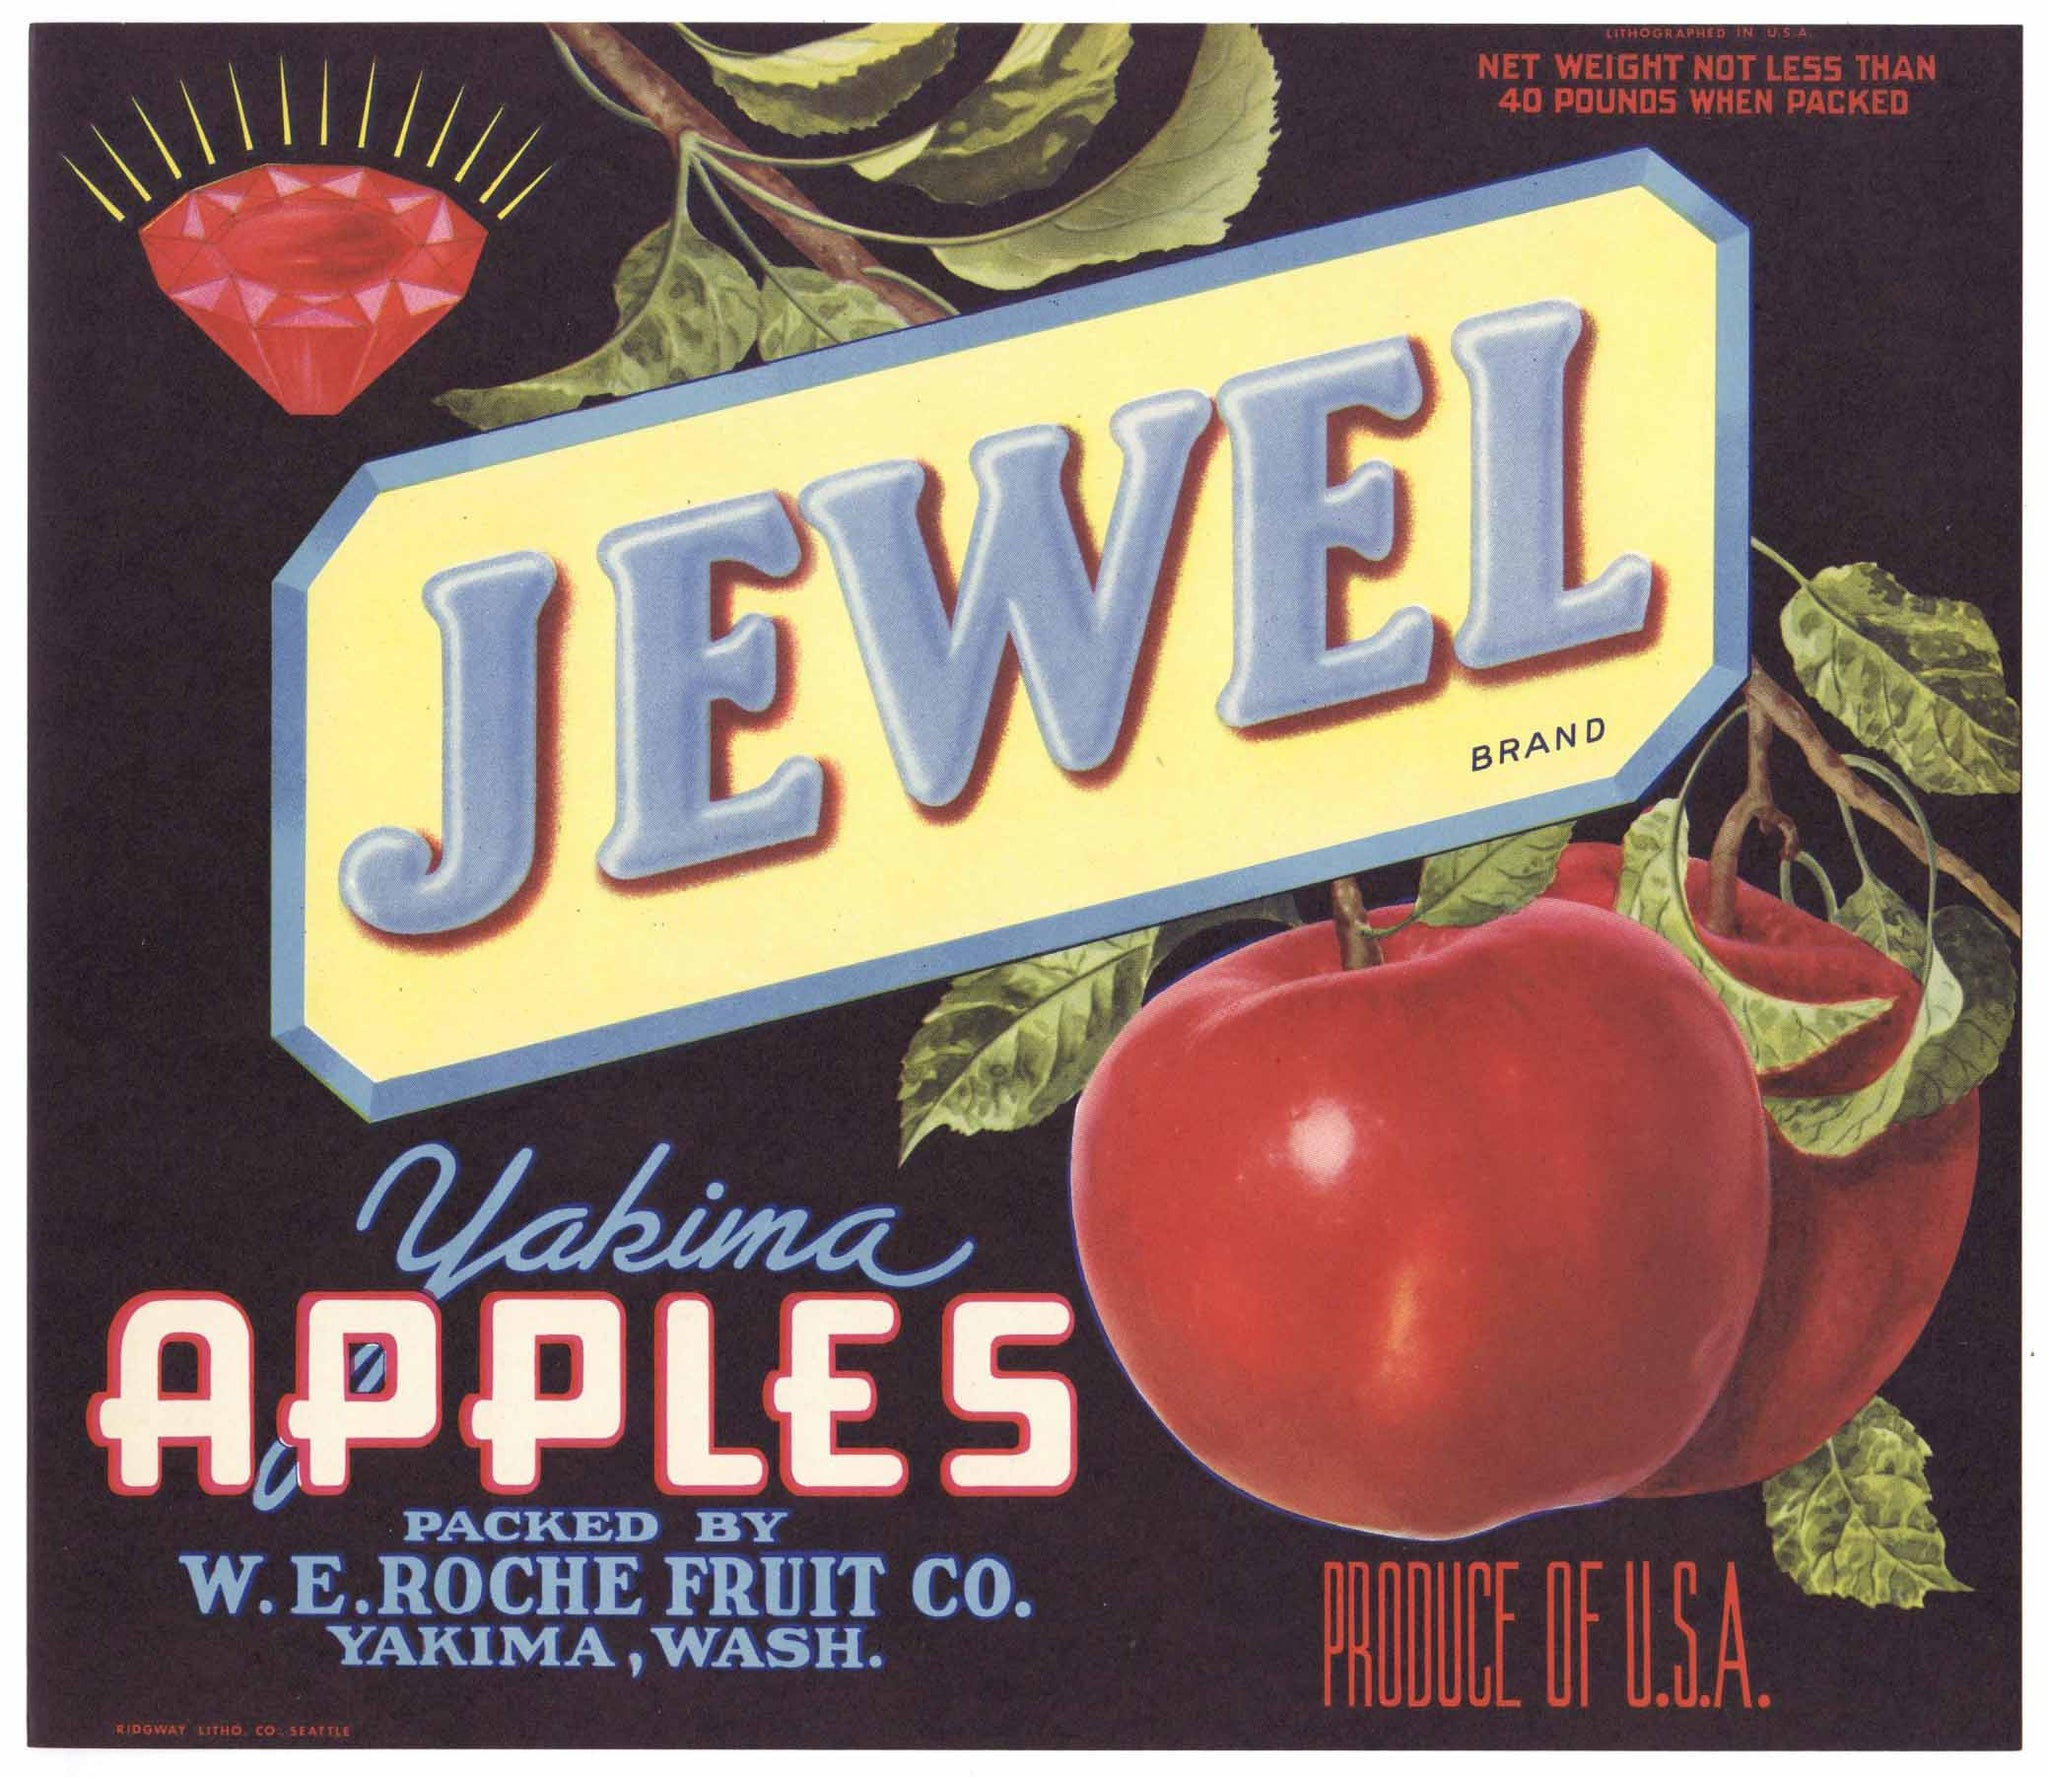 Jewel Brand Vintage Yakima Washington Apple Crate Label